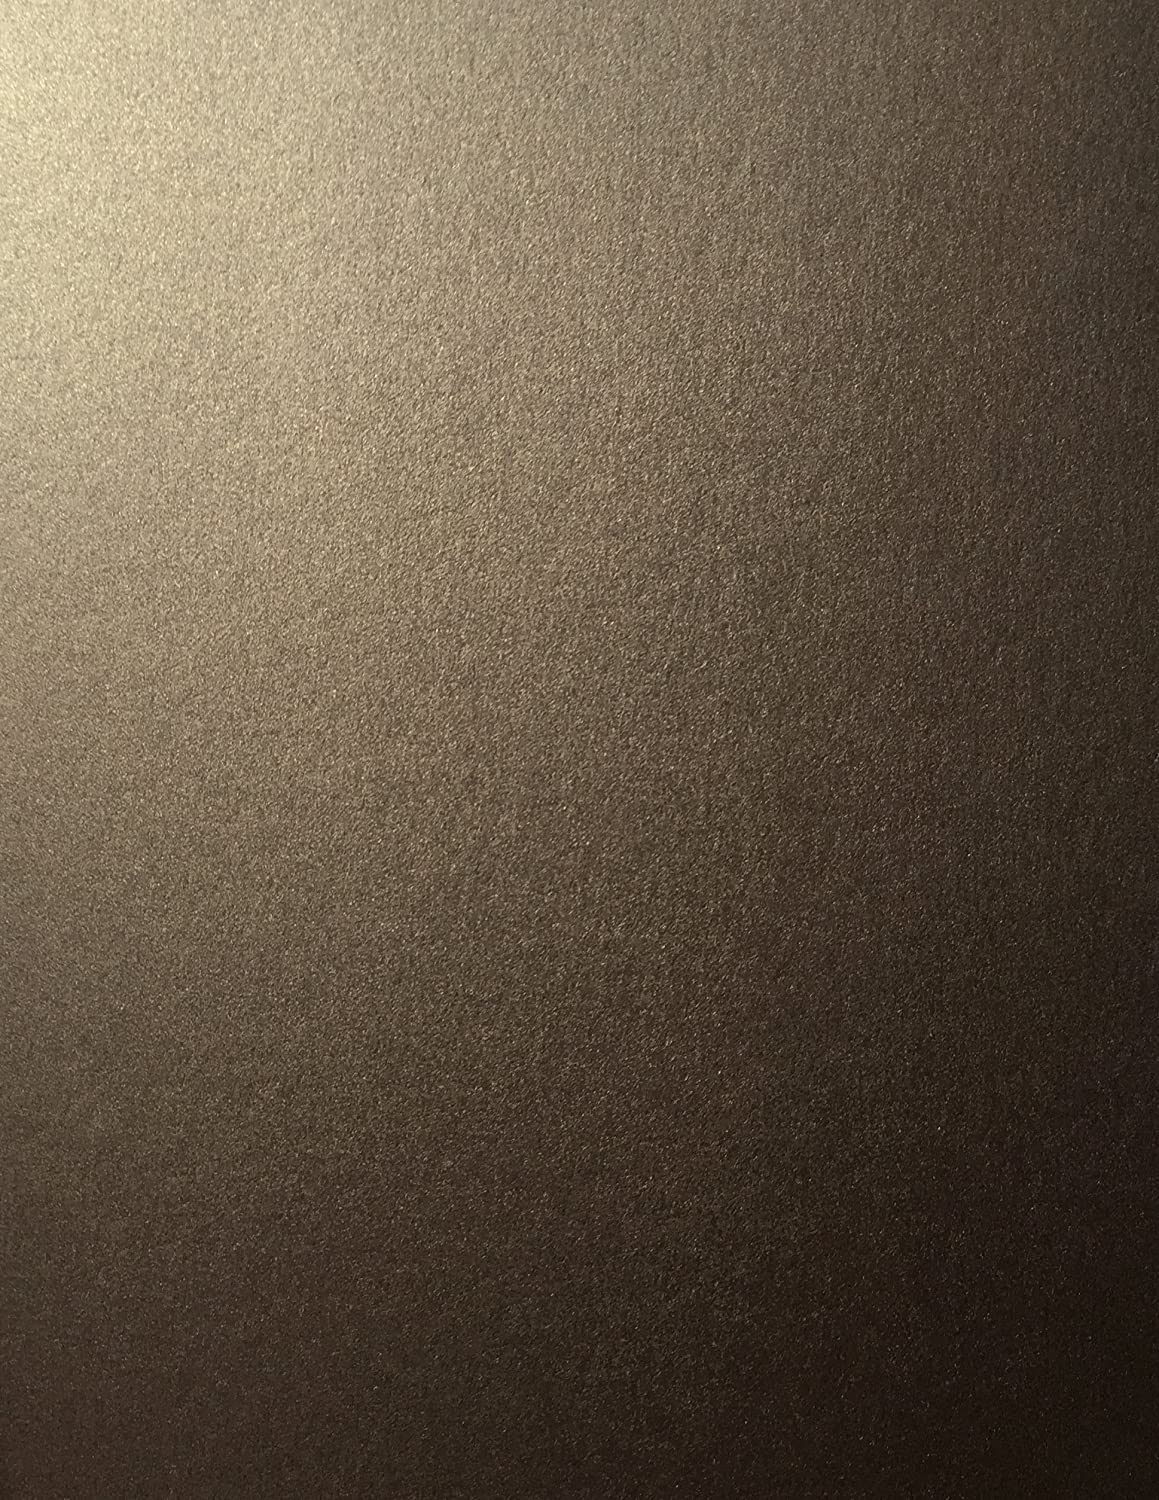 Bronze Stardream Metallic Cardstock Paper - 8.5 X 11 inch - 105 lb. / 284 GSM Cover - 25 Sheets from Cardstock Warehouse